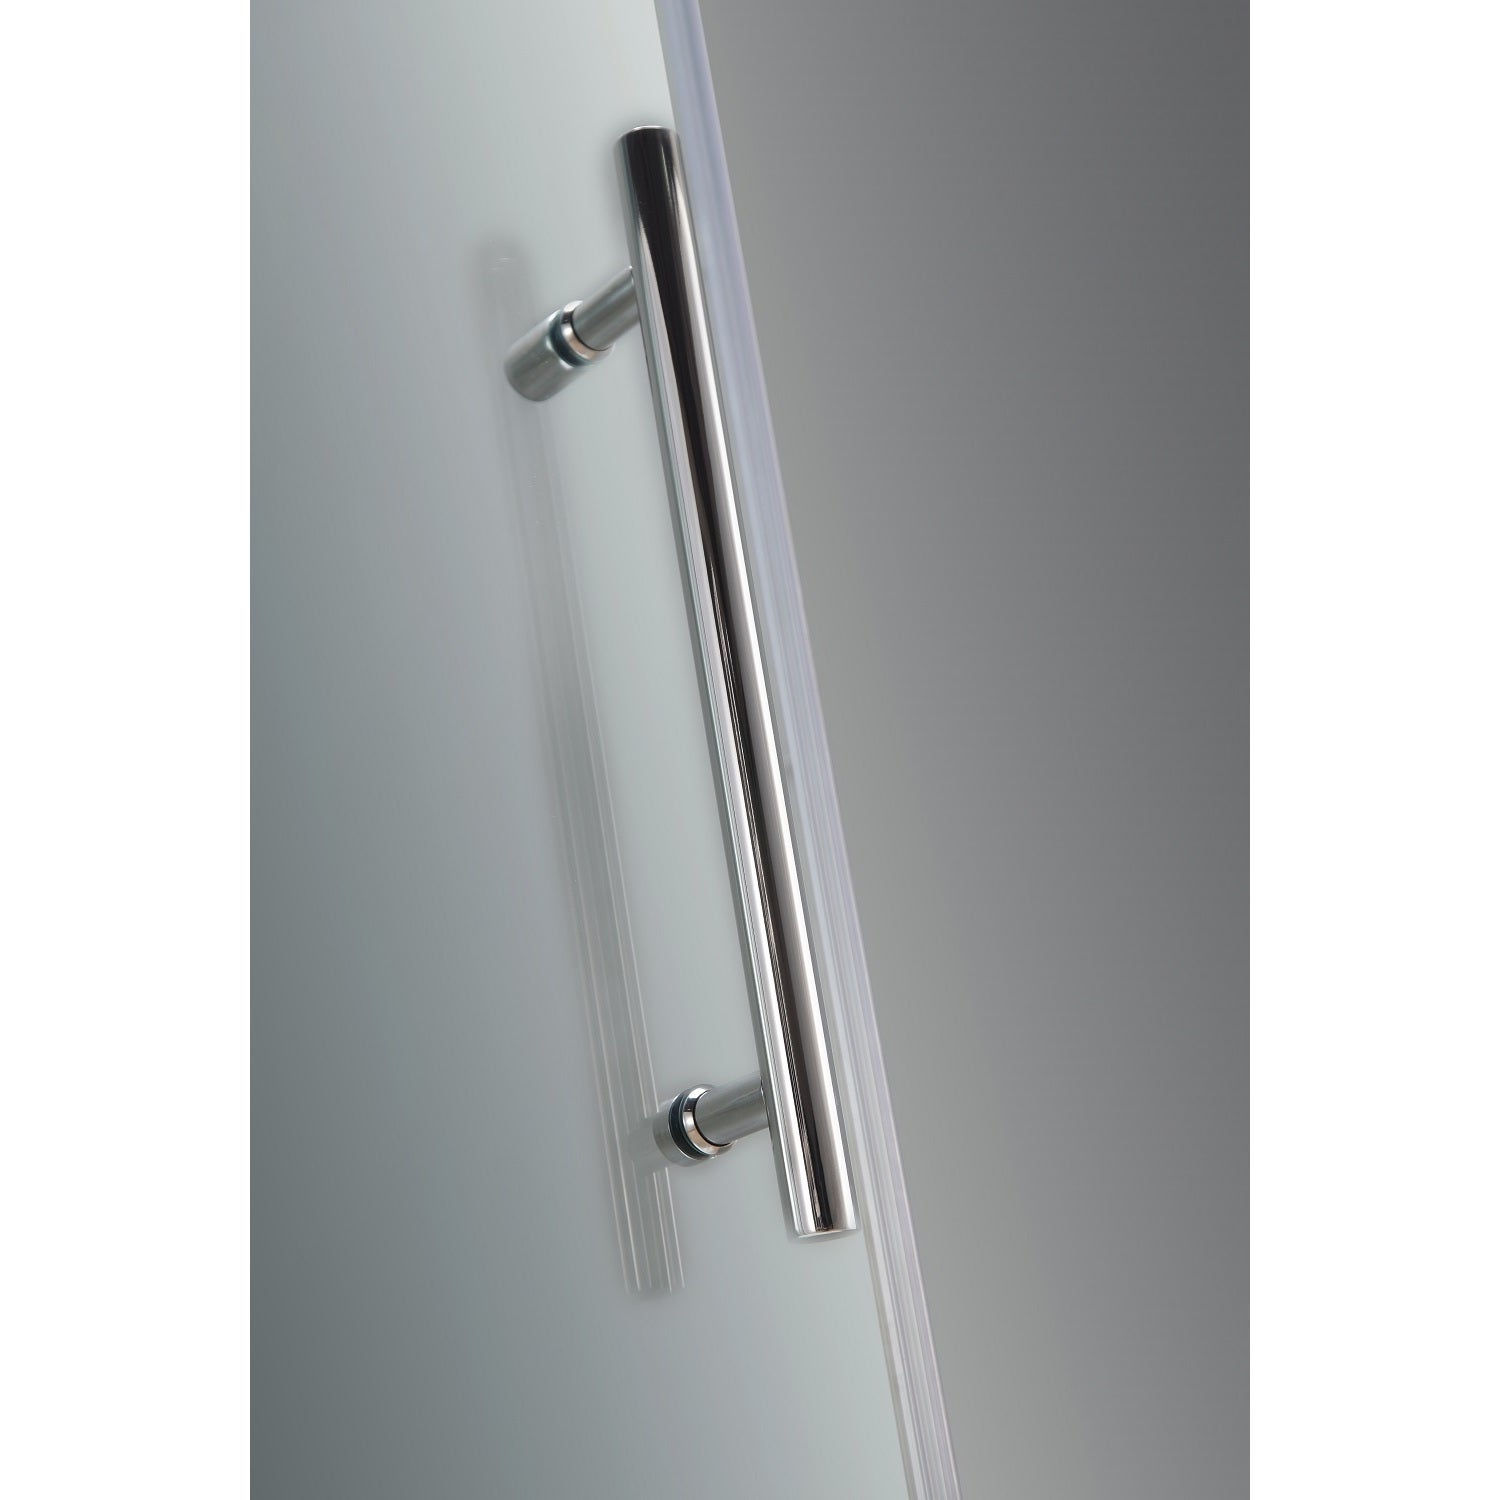 Aston Nautis Gs 40 In X 72 In Completely Frameless Hinged Alcove Shower Door In Chrome W Glass Shelves Overstock 9937257